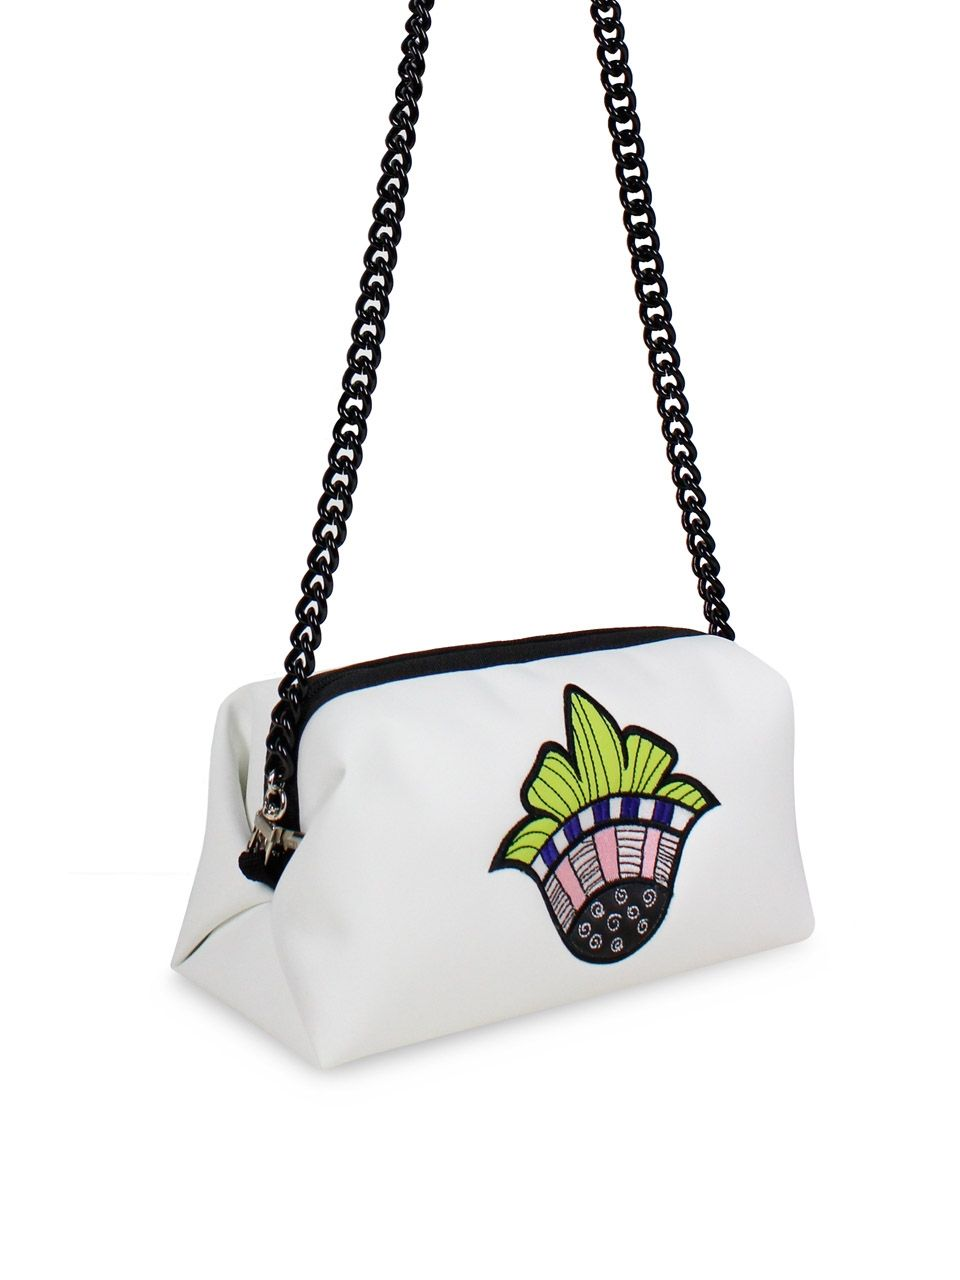 Mini bag a with chain - GOSHICO